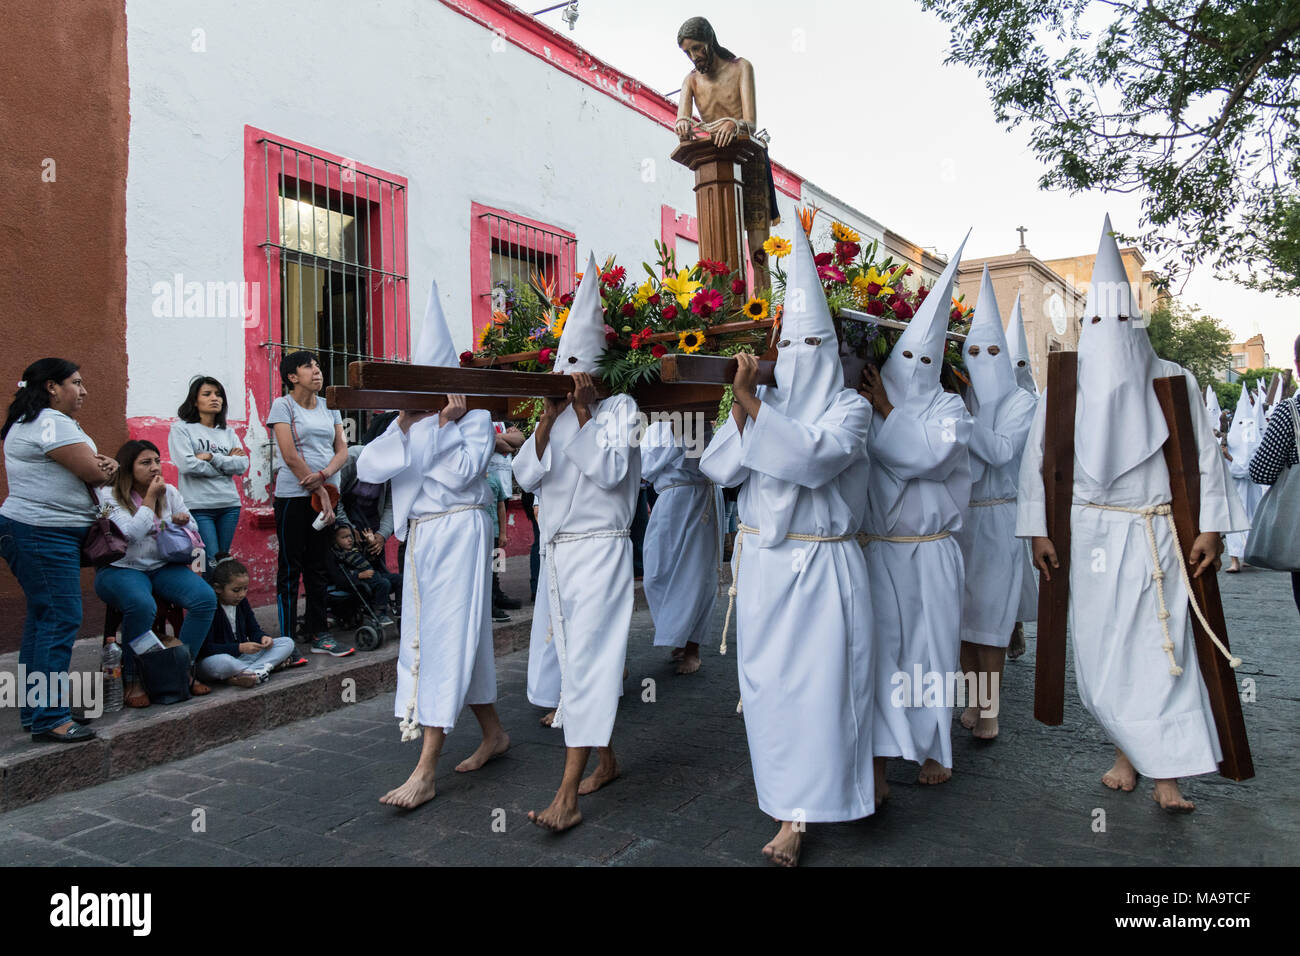 Queretaro, Mexico, 31 Mar 2018. Hooded penitents carry a statue of Jesus during the Procession of Silence through the streets on Good Friday during Holy Week March 30, 2018 in Querétaro, Mexico. The penitents, known as Nazarenes, carry heavy crosses and drag chains in a four hour march to relive the pain and suffering during the passion of Christ. Credit: Planetpix/Alamy Live News - Stock Image